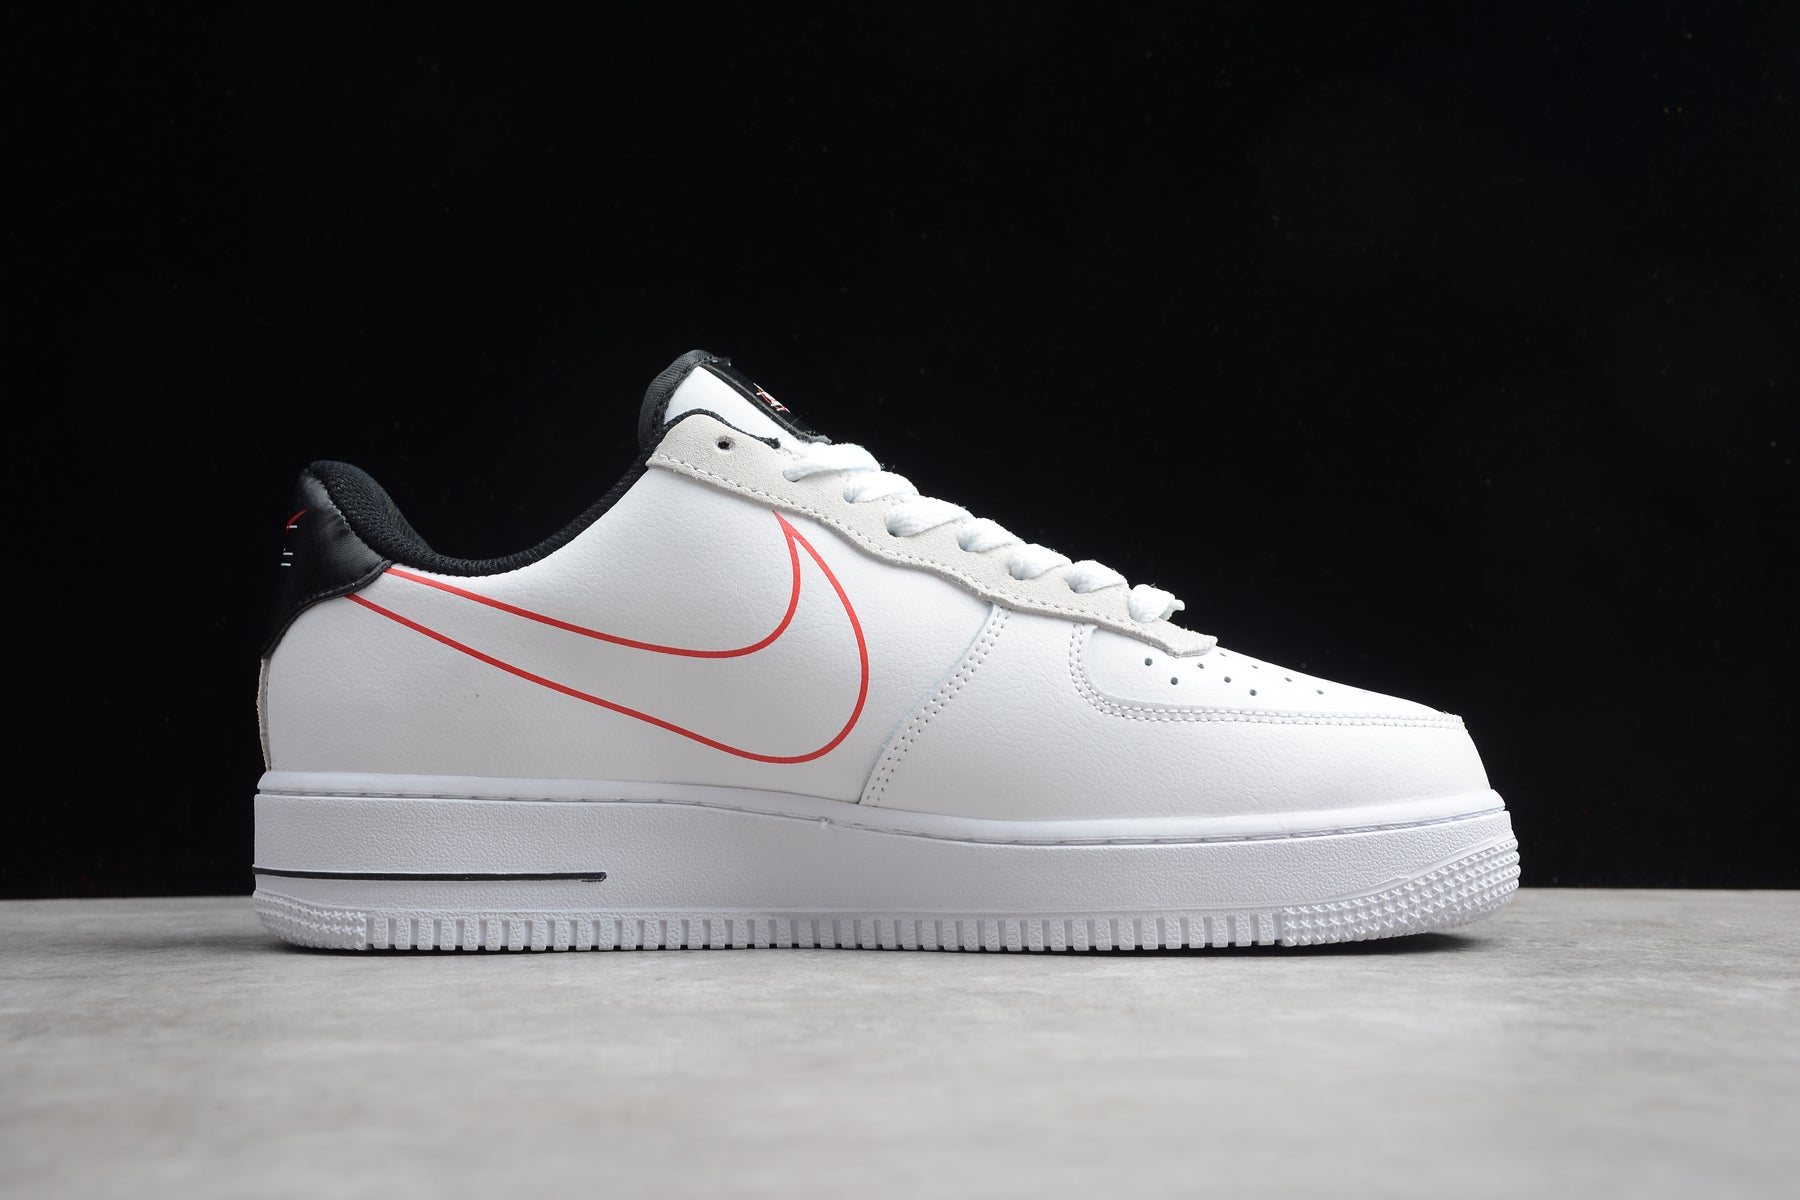 Air Force 1 LX White